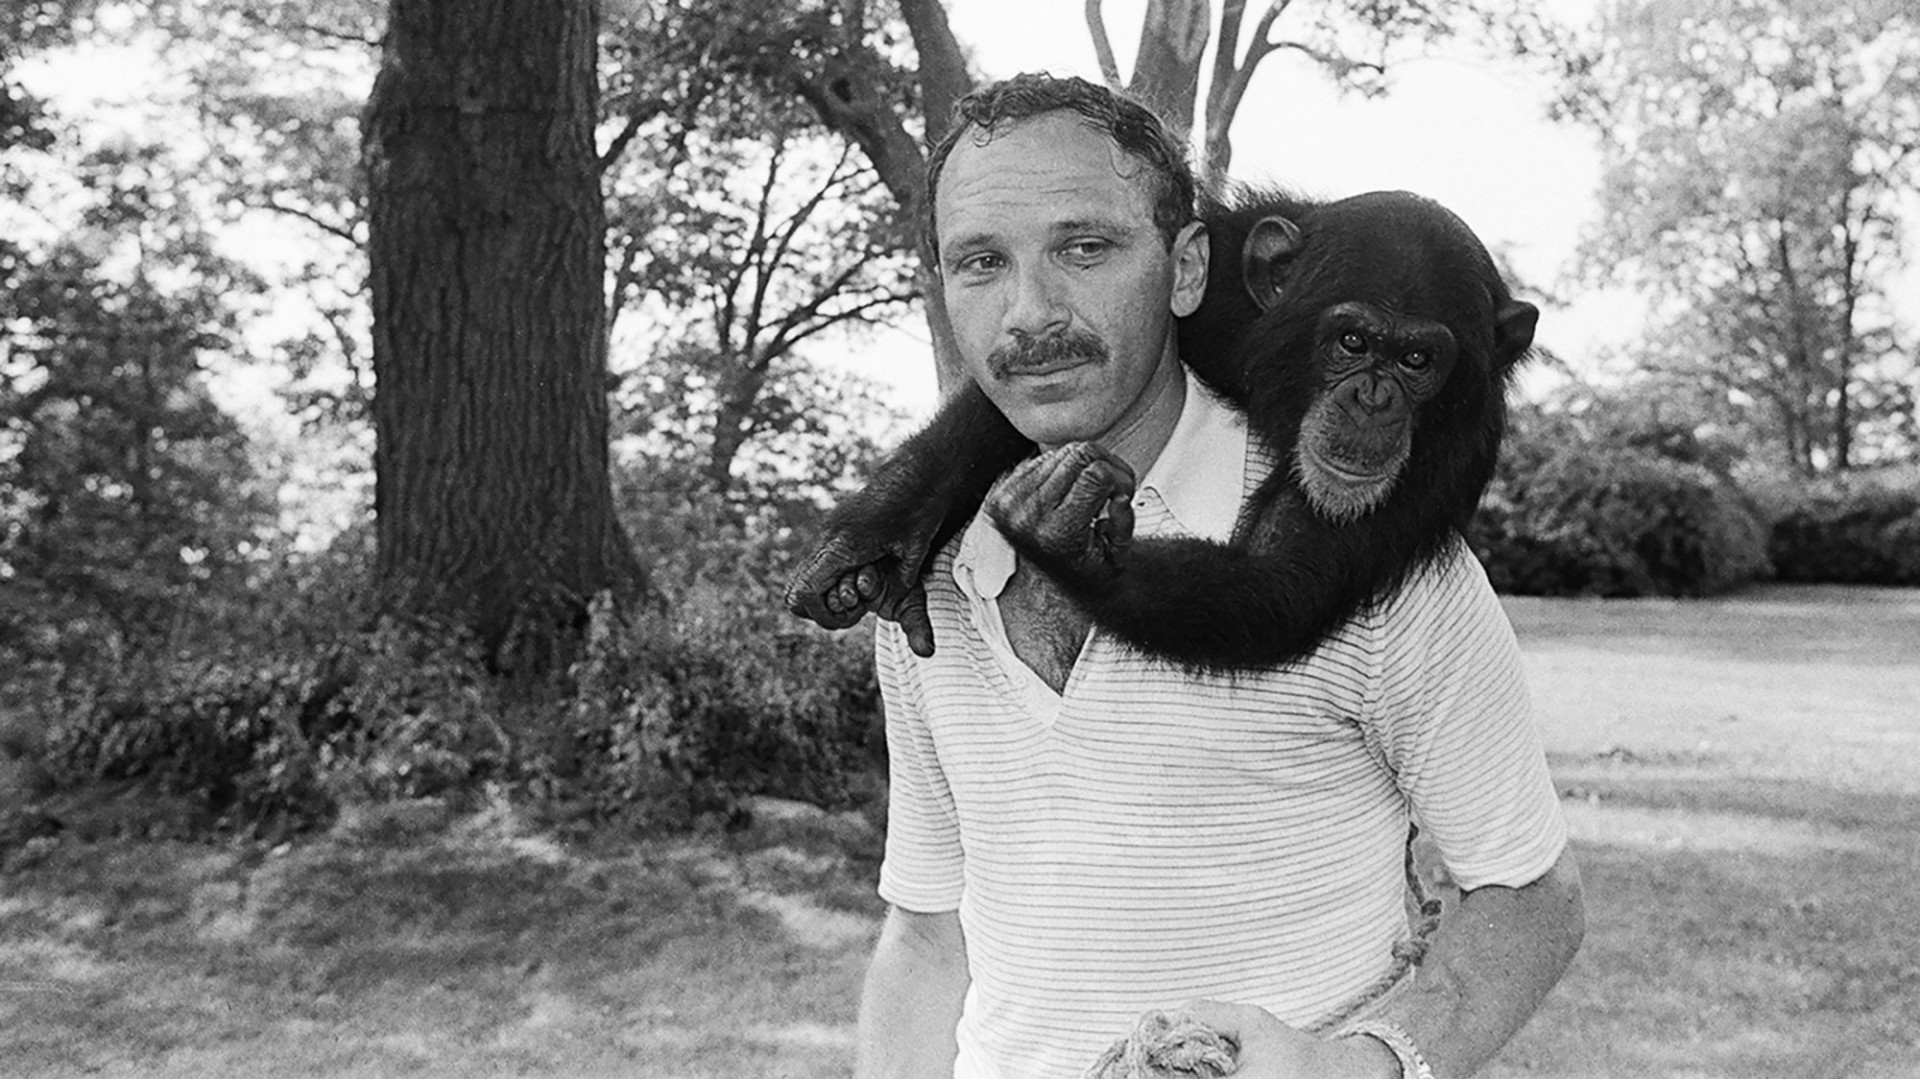 black and white image of young man with mustache carrying a chimp on his back